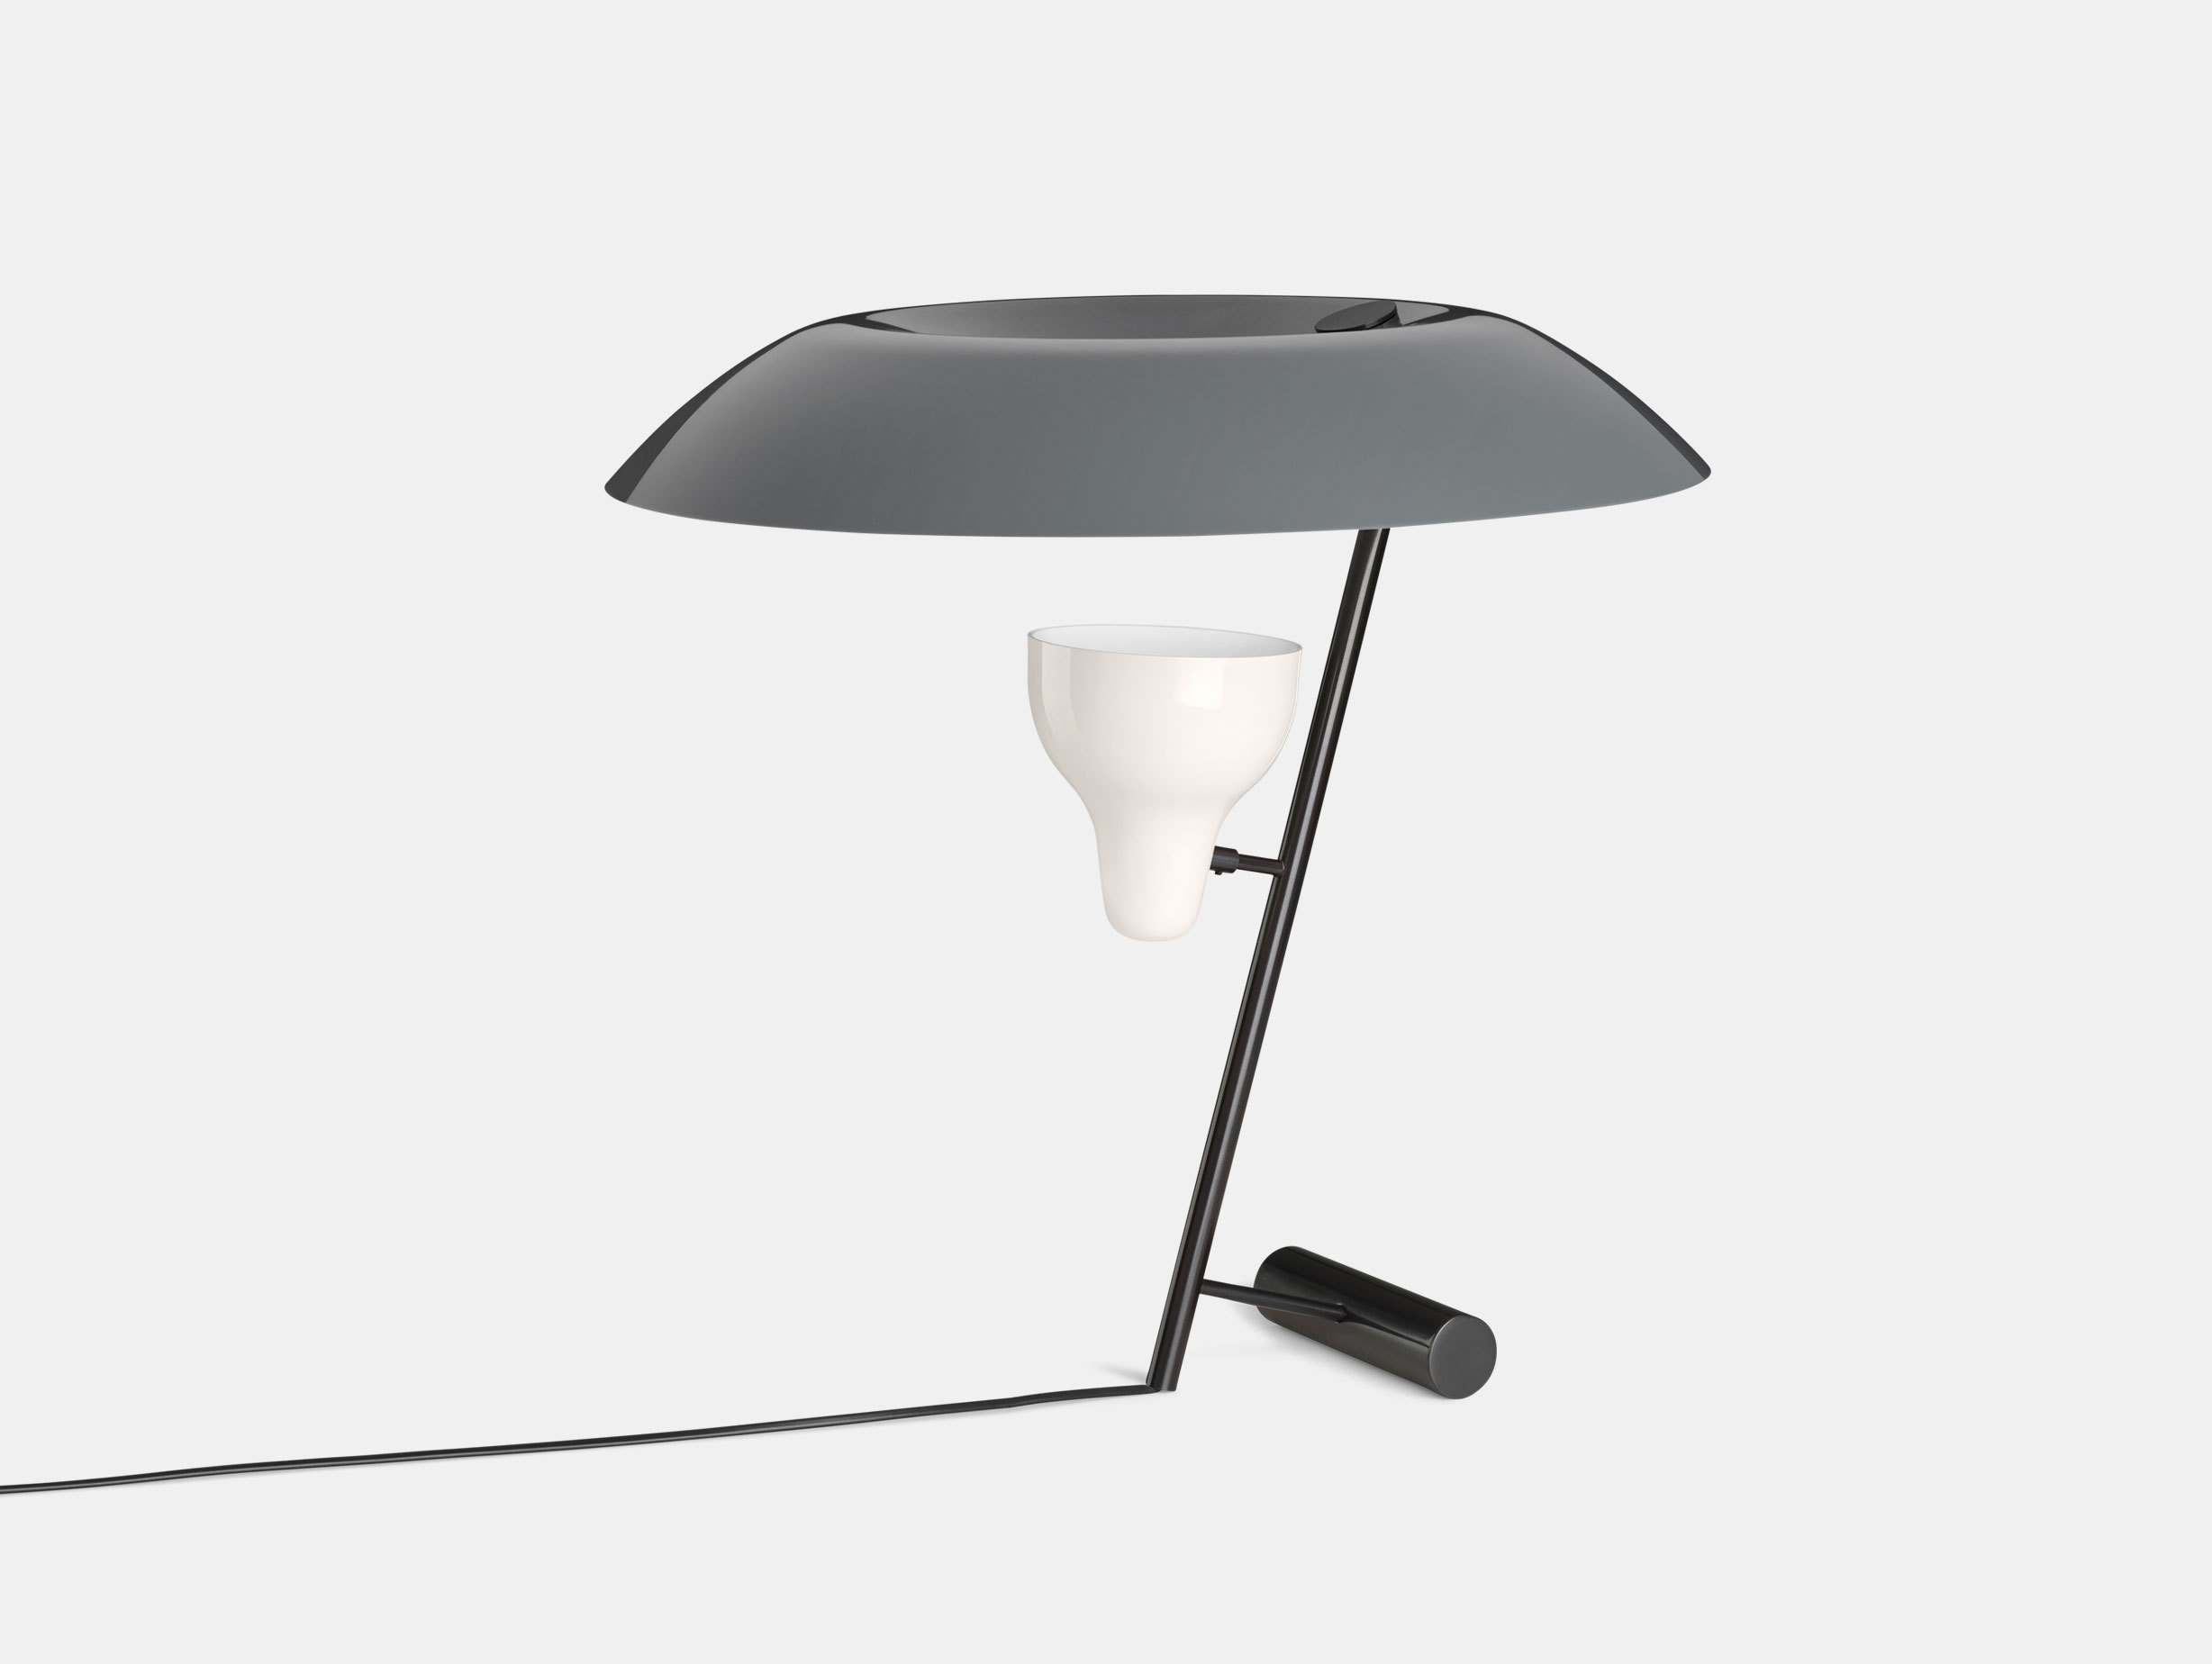 Model 548 Table Lamp image 1